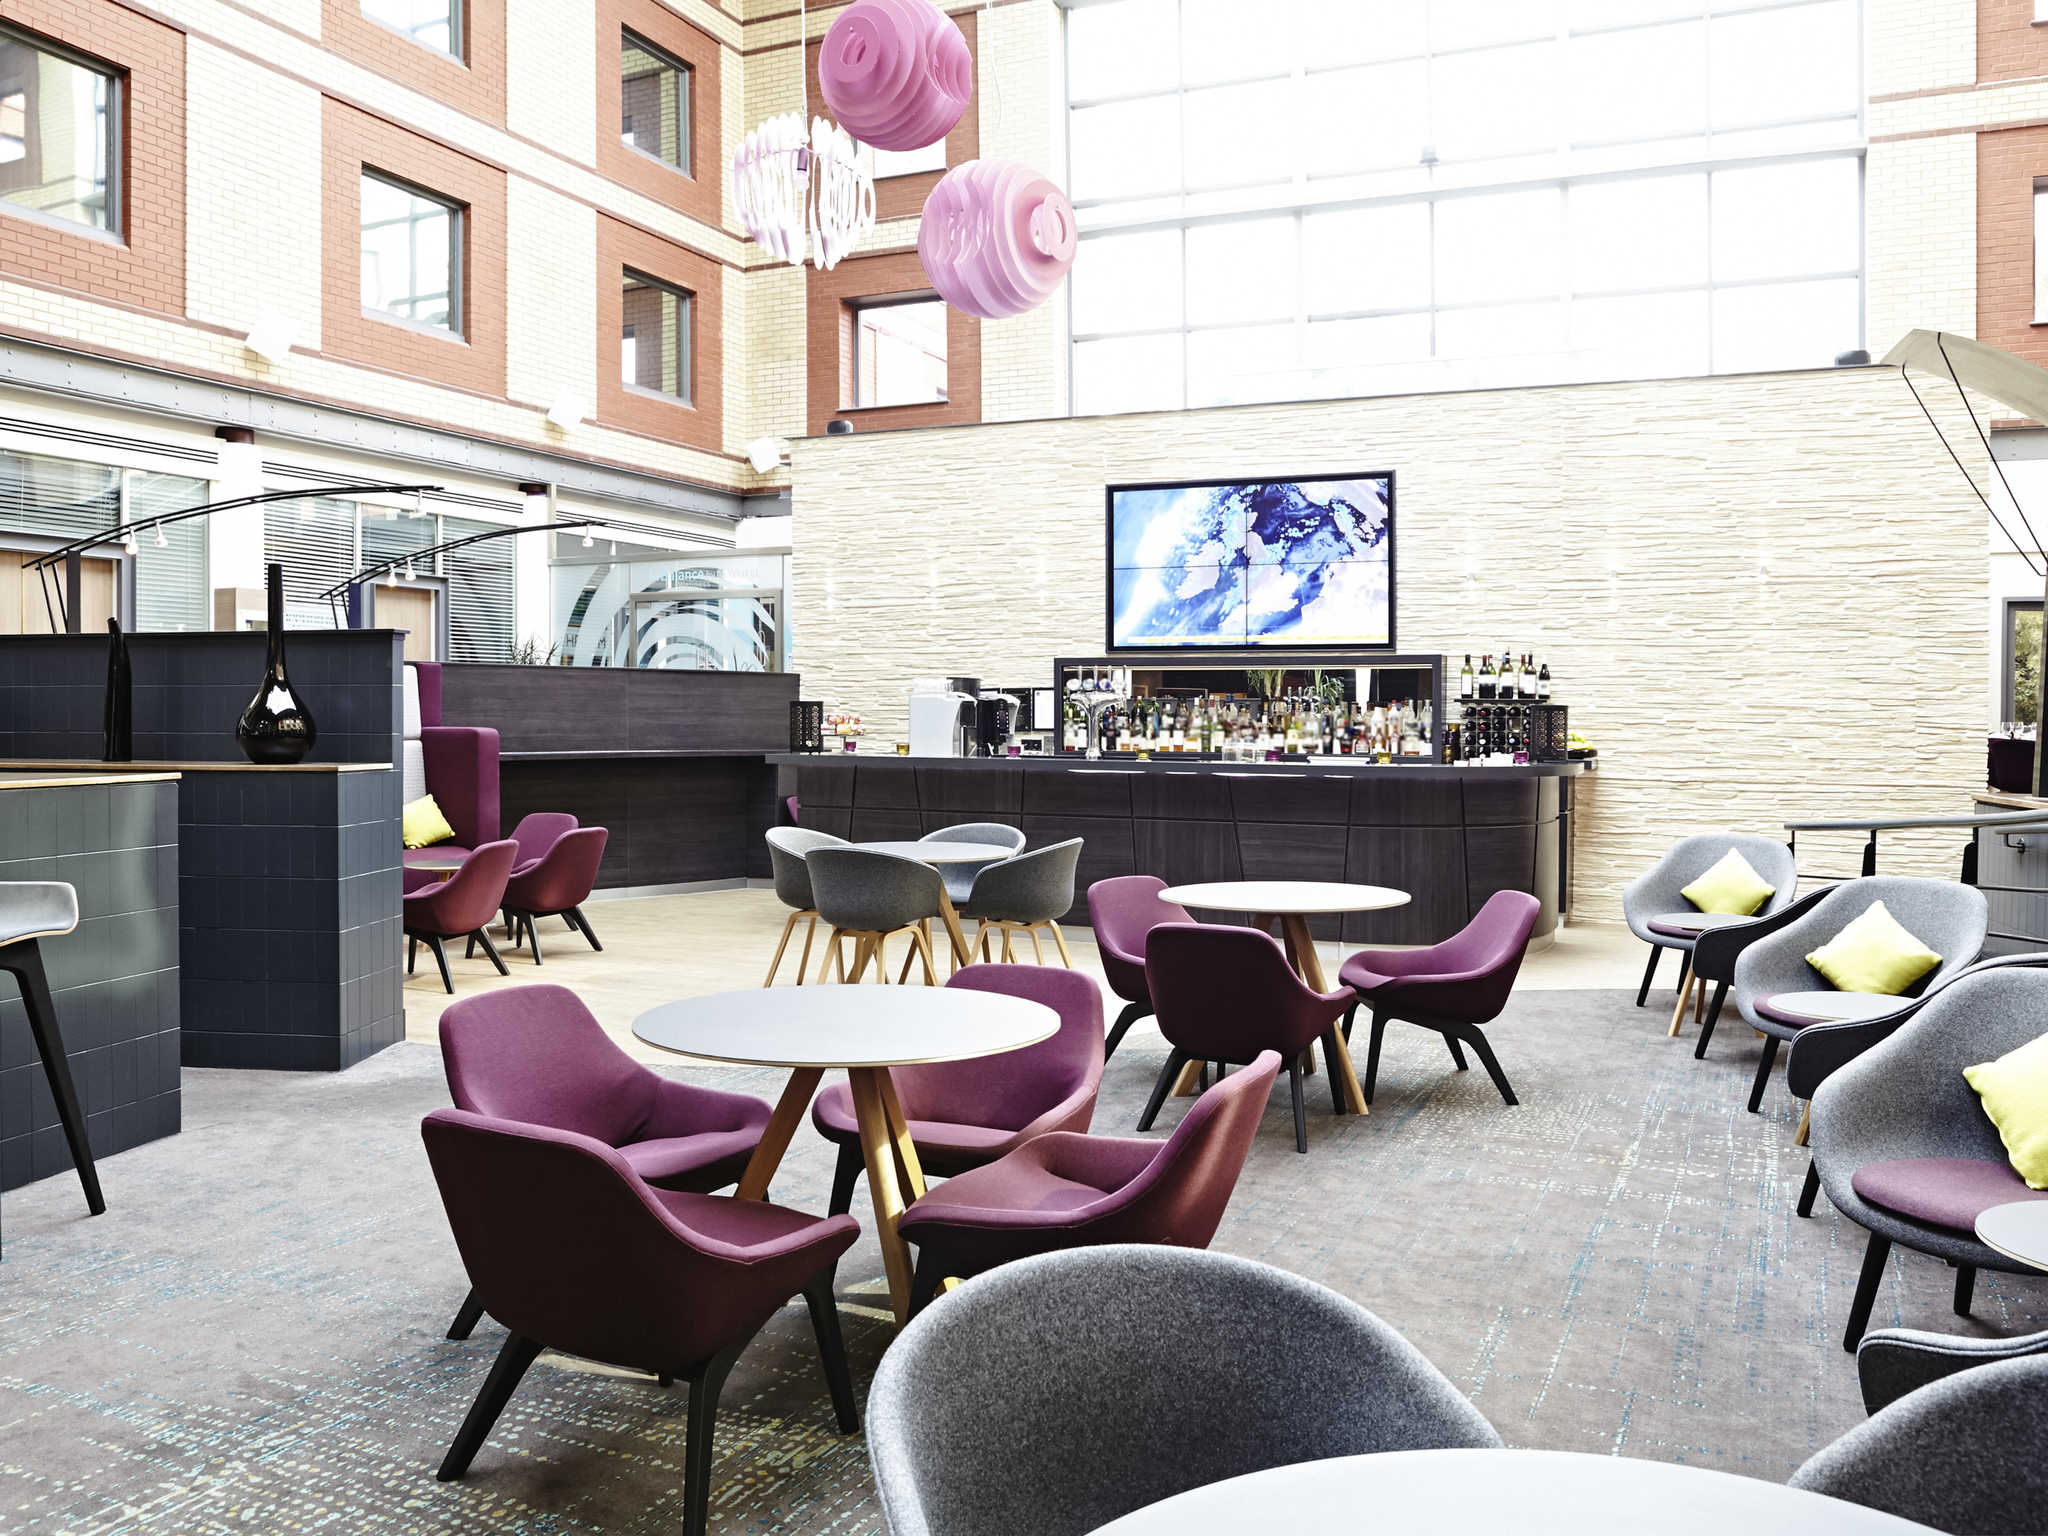 Hotel - Novotel London Heathrow Airport - M4 Abfahrt 4